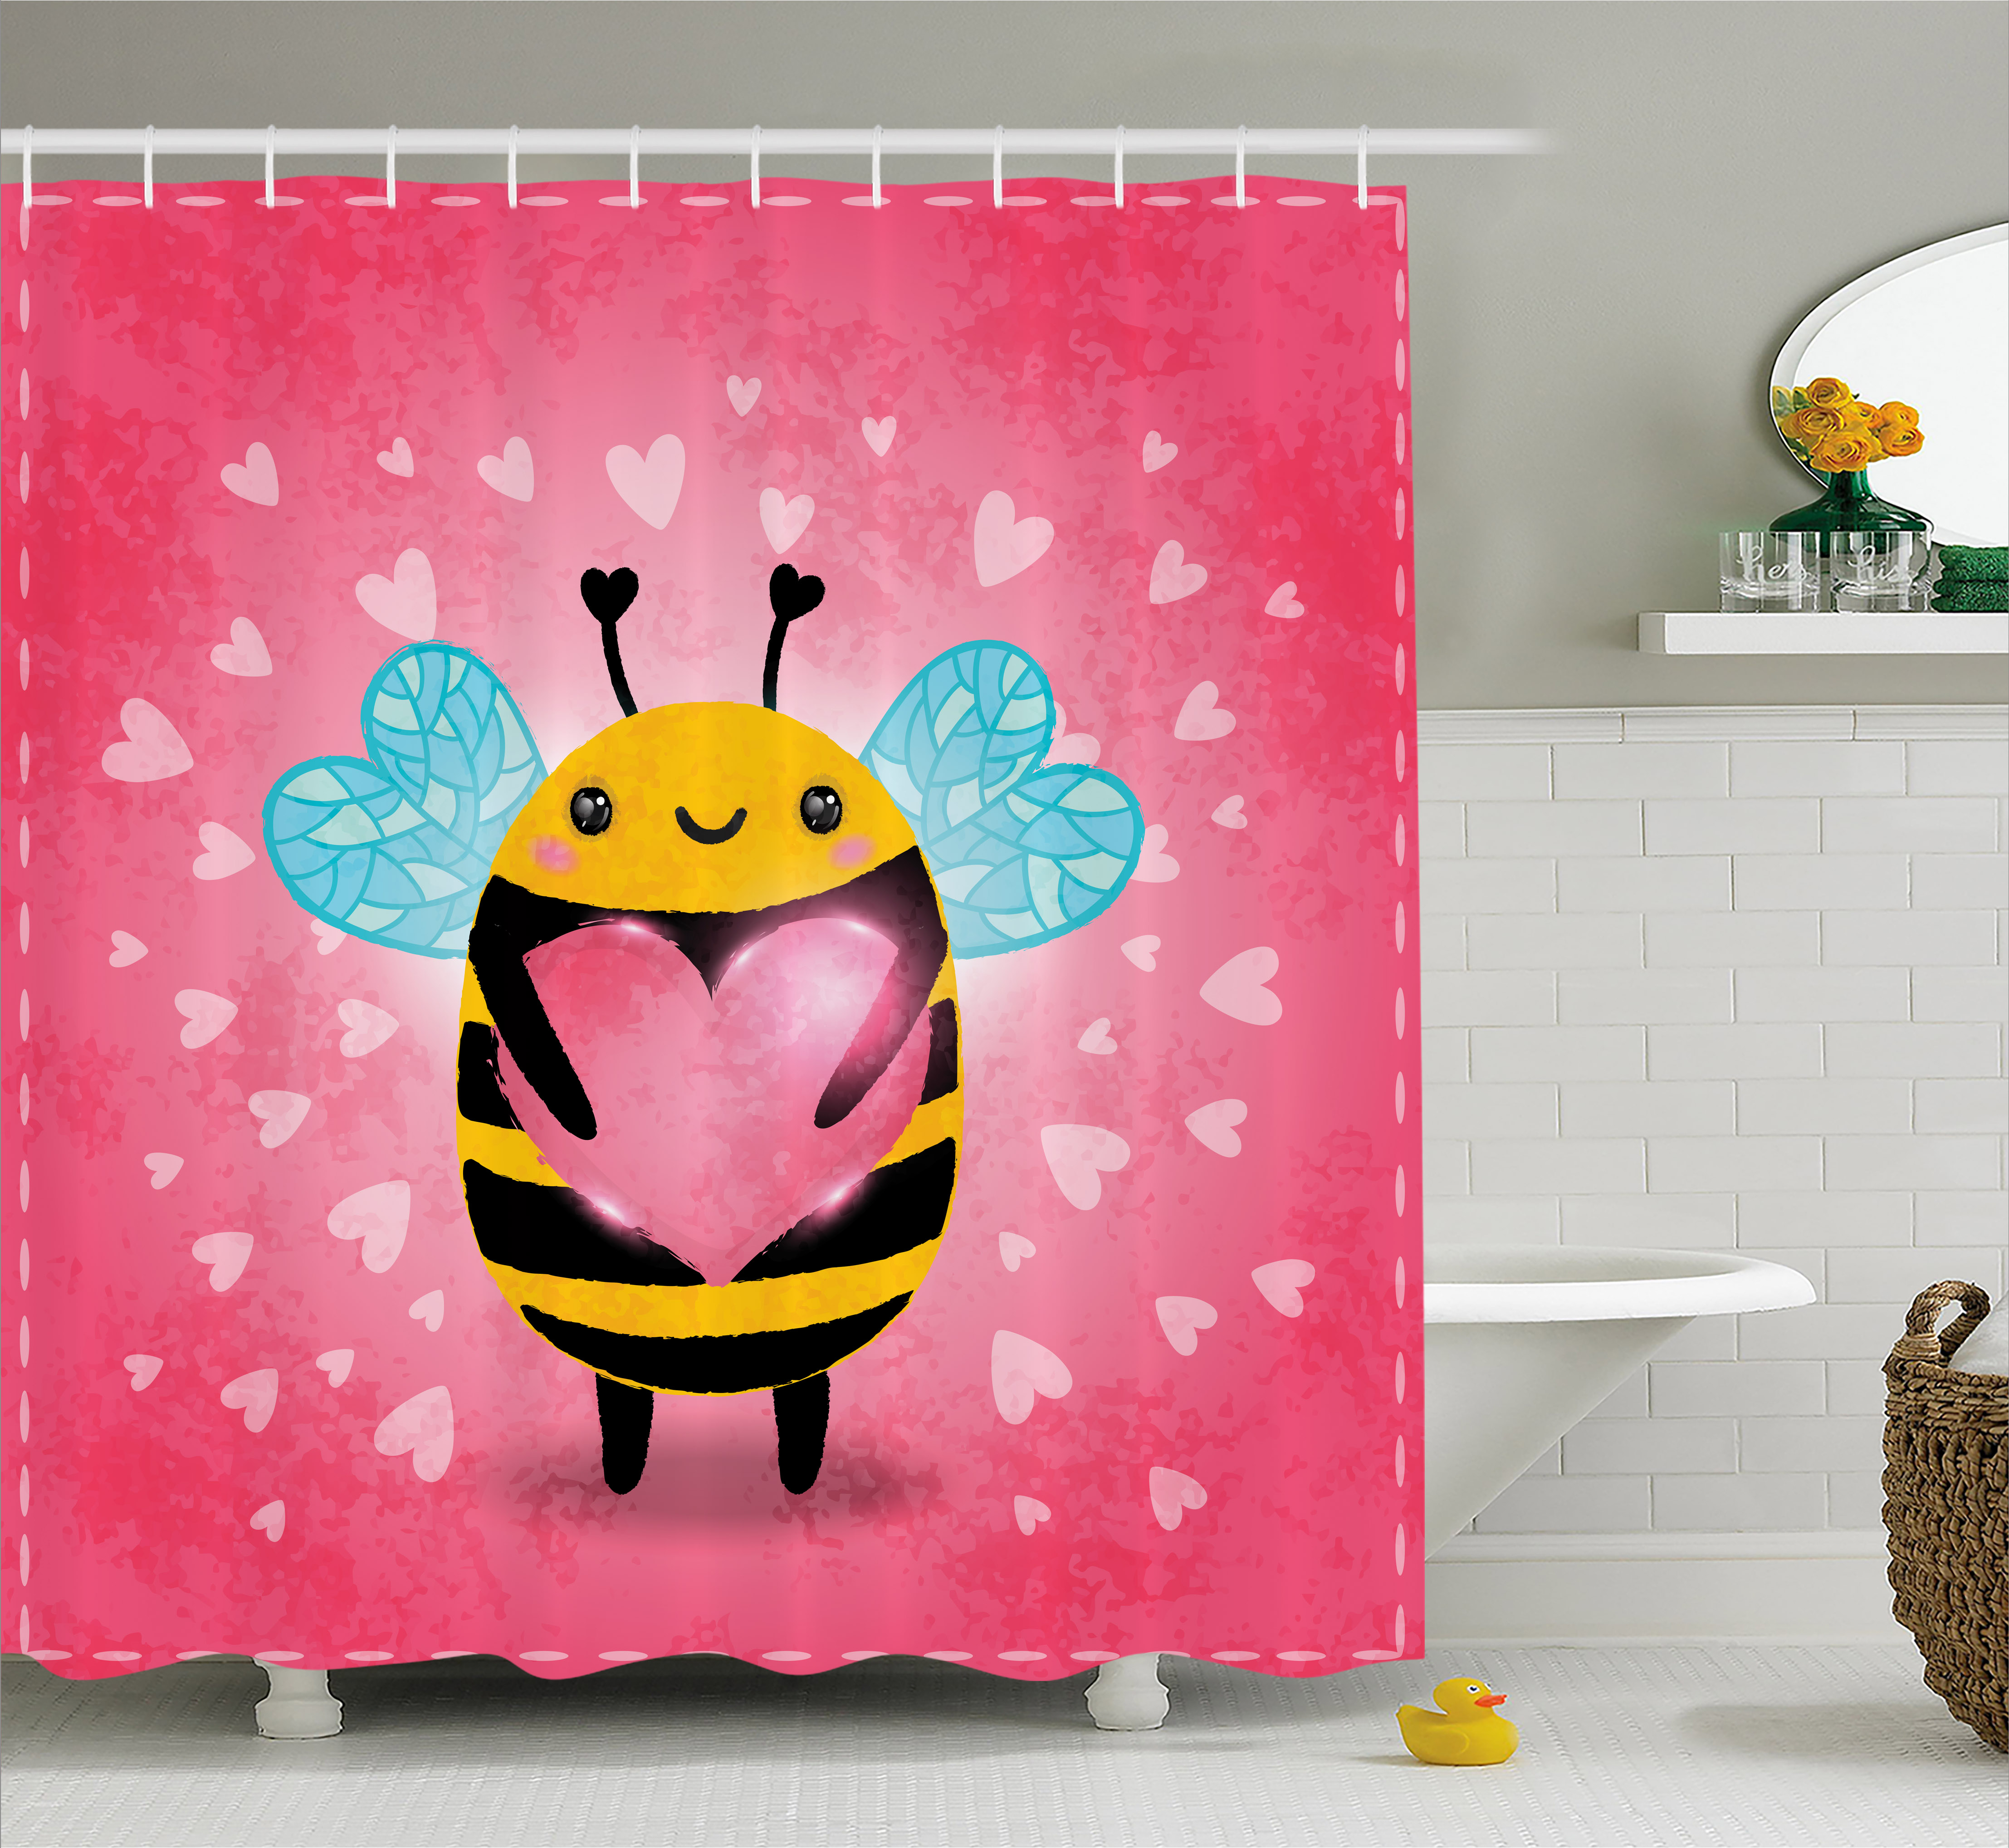 Queen Bee Shower Curtain, Valentine's Day Themed Bumblebee Holding a Giant Heart Cartoon Style, Fabric Bathroom Set with Hooks, 69W X 84L Inches Extra Long, Coral Pale Blue Yellow, by Ambesonne